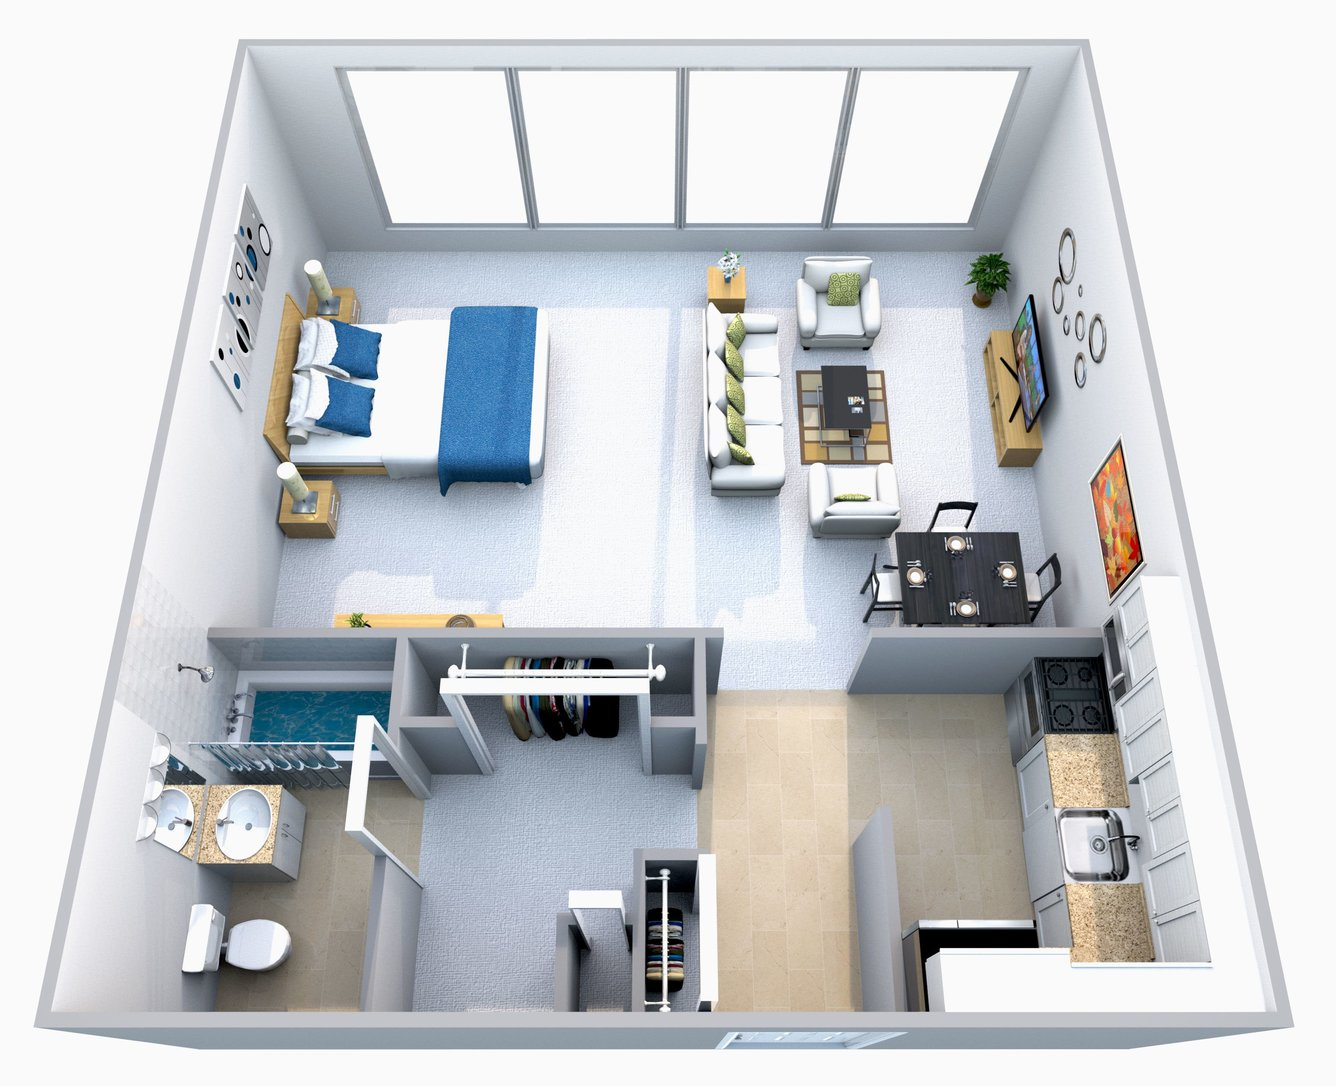 Apartments for Rent in Pittsburgh | City View Apartments | Home on gardening with apartment, home with apartment, building plans with apartment, house plans 1 bedroom apartment,